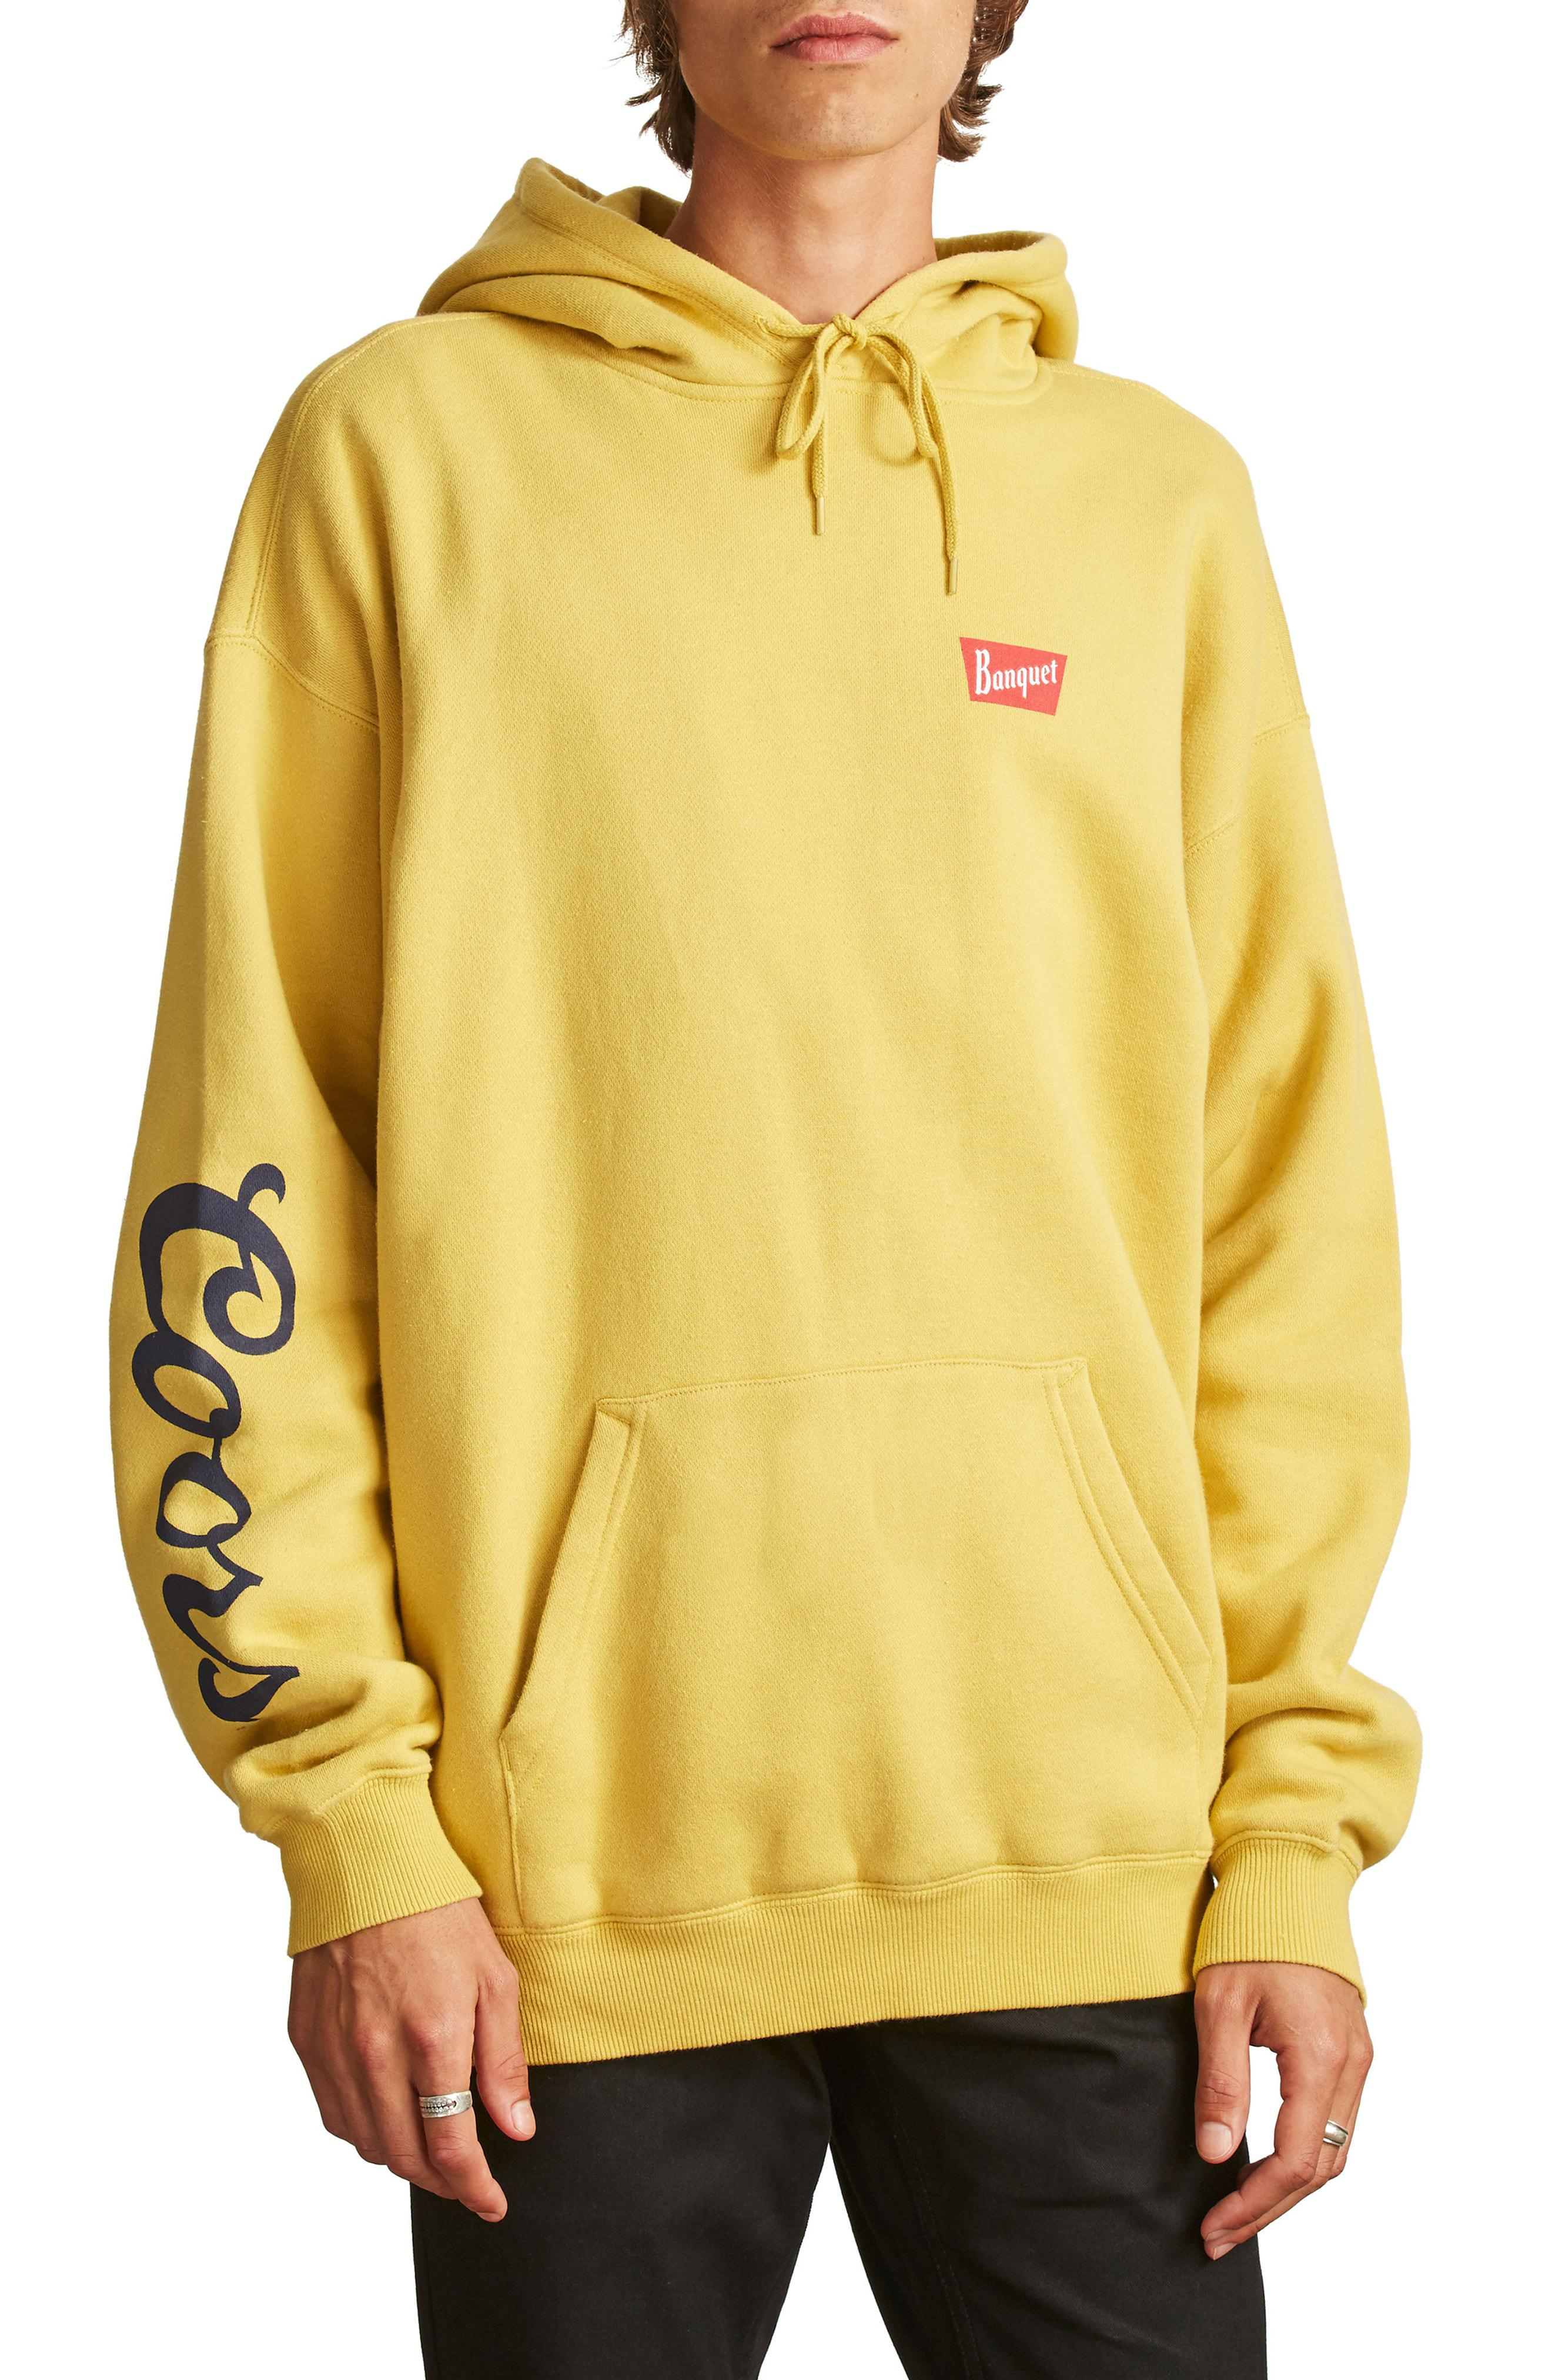 Lyst - Brixton X Coors Banquet Hoodie in Yellow for Men a74086d50a3